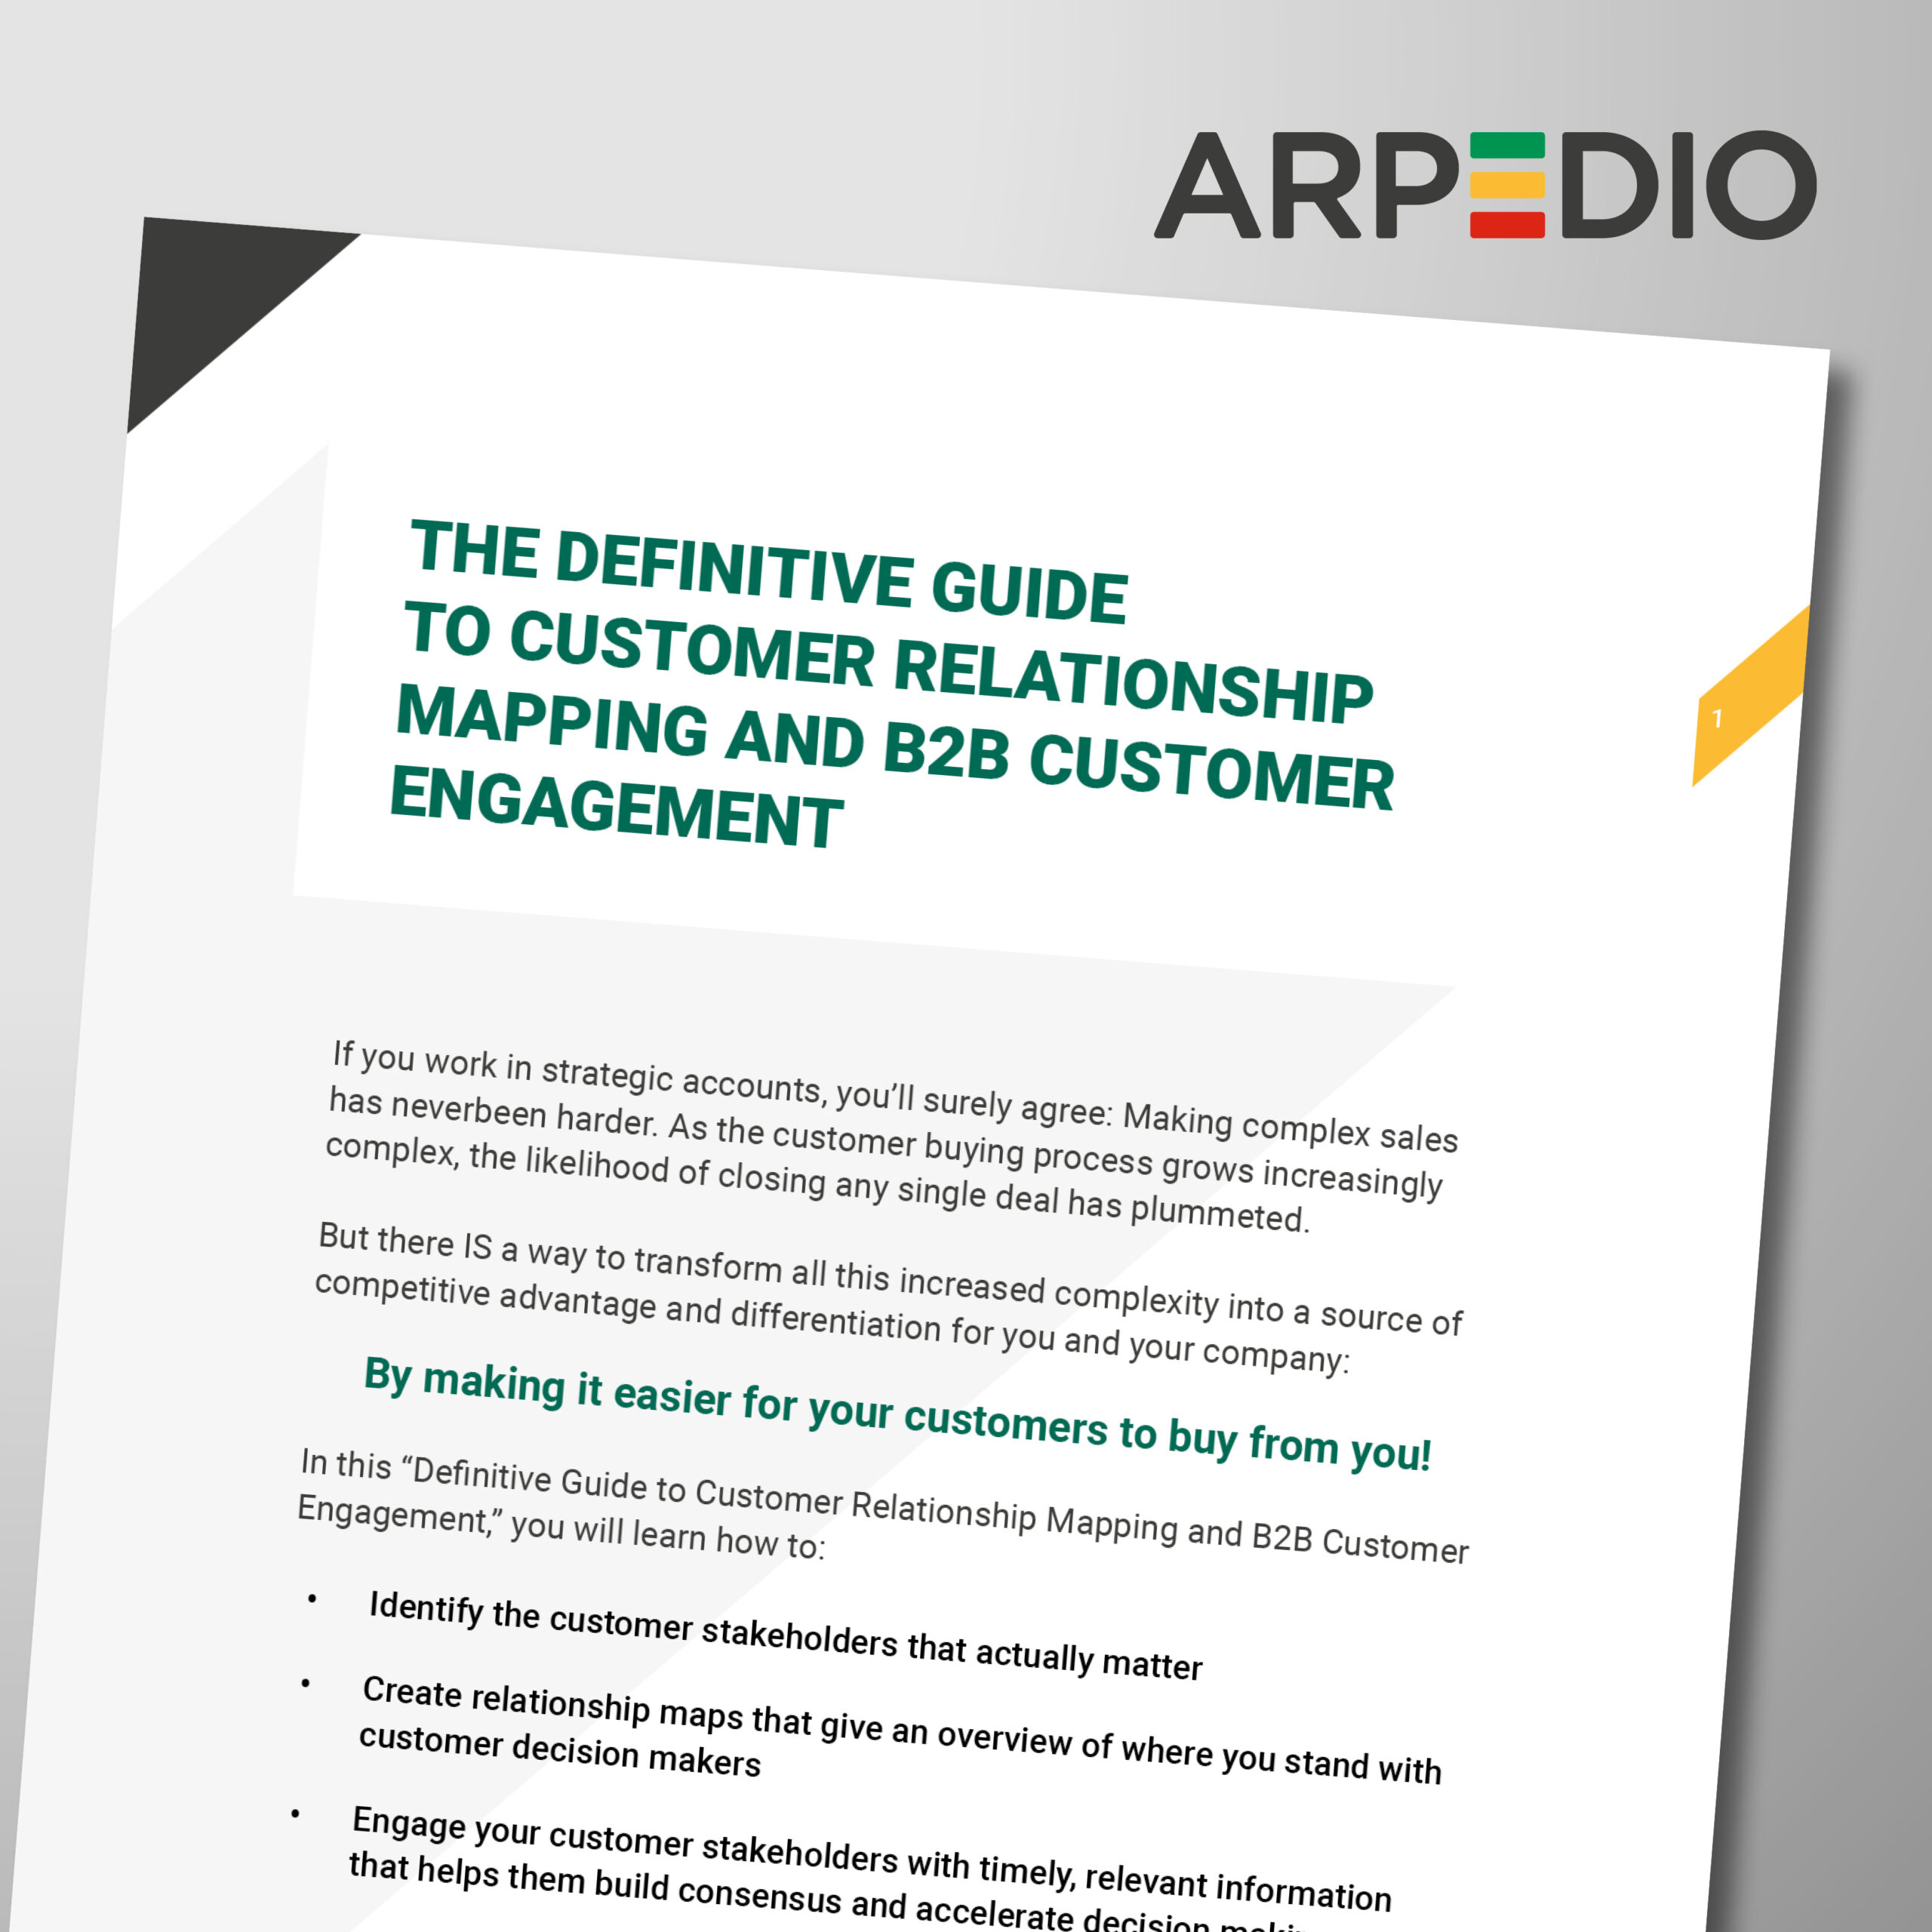 The Definitive Guide to Customer Engagement download